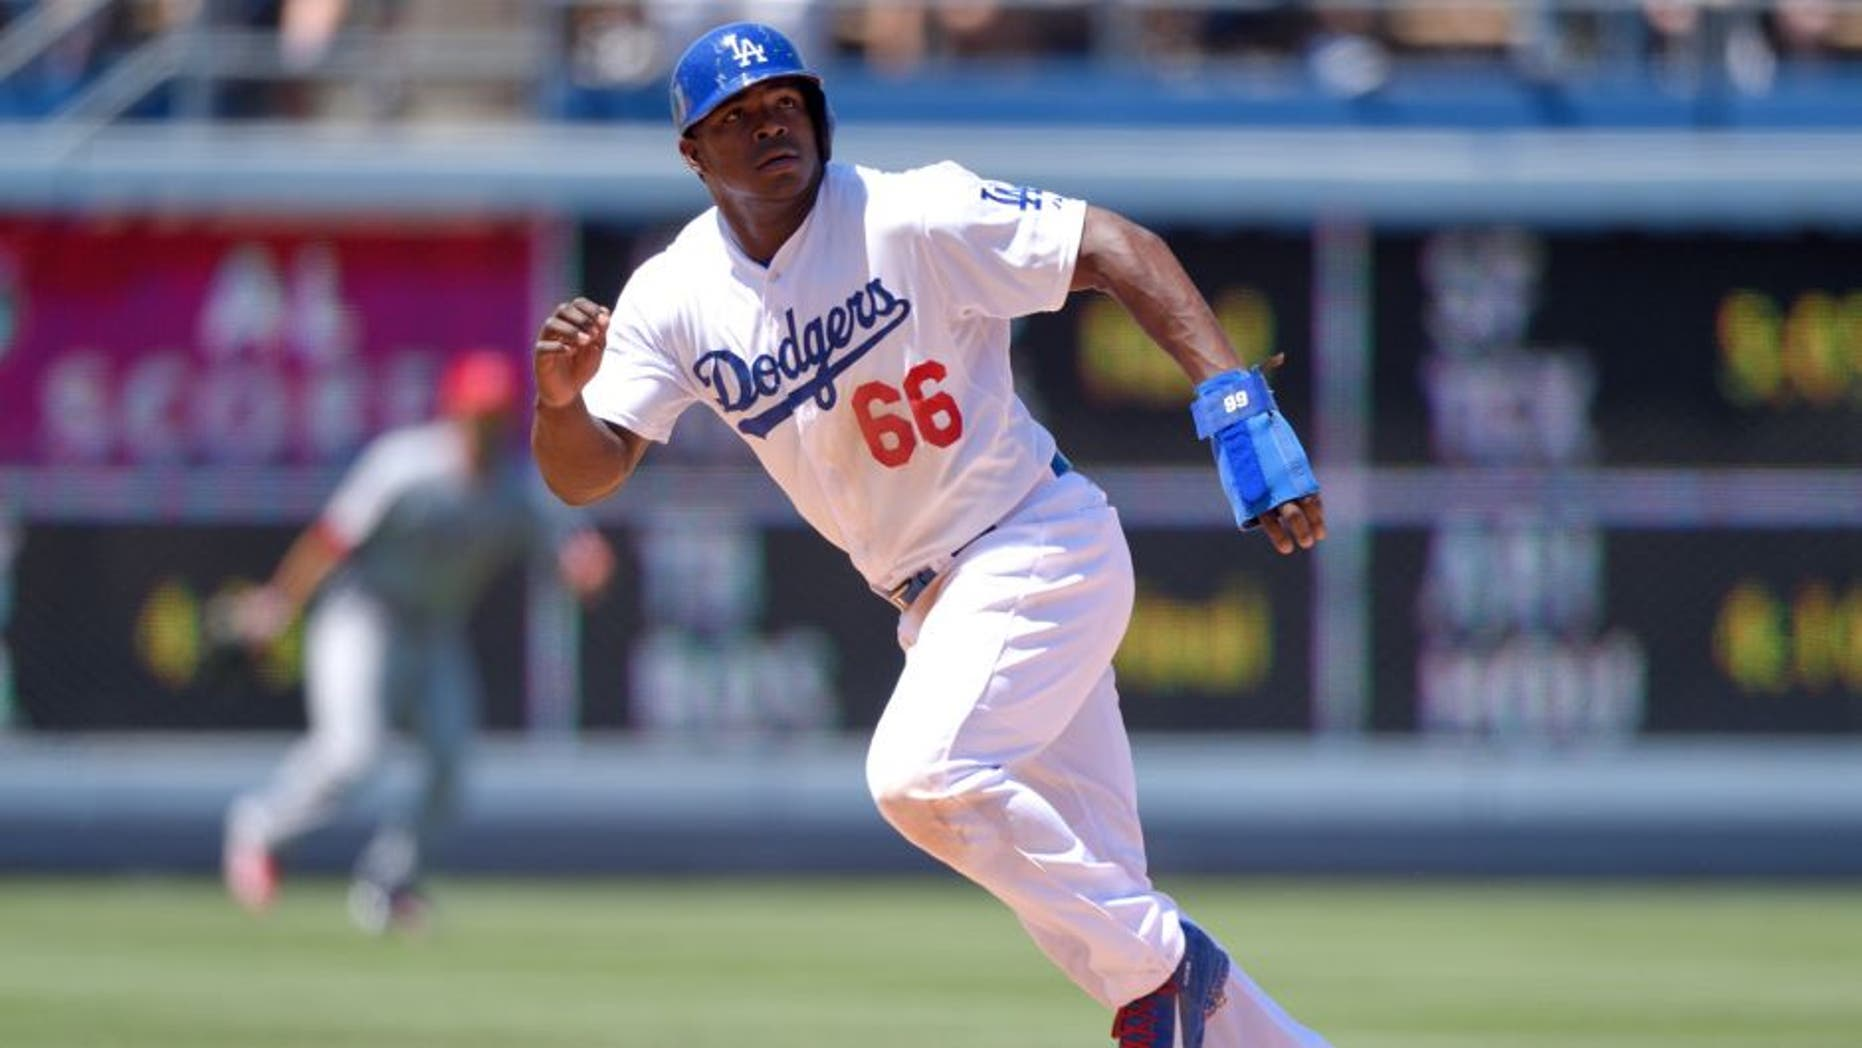 LOS ANGELES, CA - AUGUST 1: Yasiel Puig #66 of the Los Angeles Dodgers runs during the game against the Los Angeles Angels of Anaheim at Dodger Stadium on August 1, 2015 in Los Angeles, California. (Photo by Matt Brown/Angels Baseball LP/Getty Images)